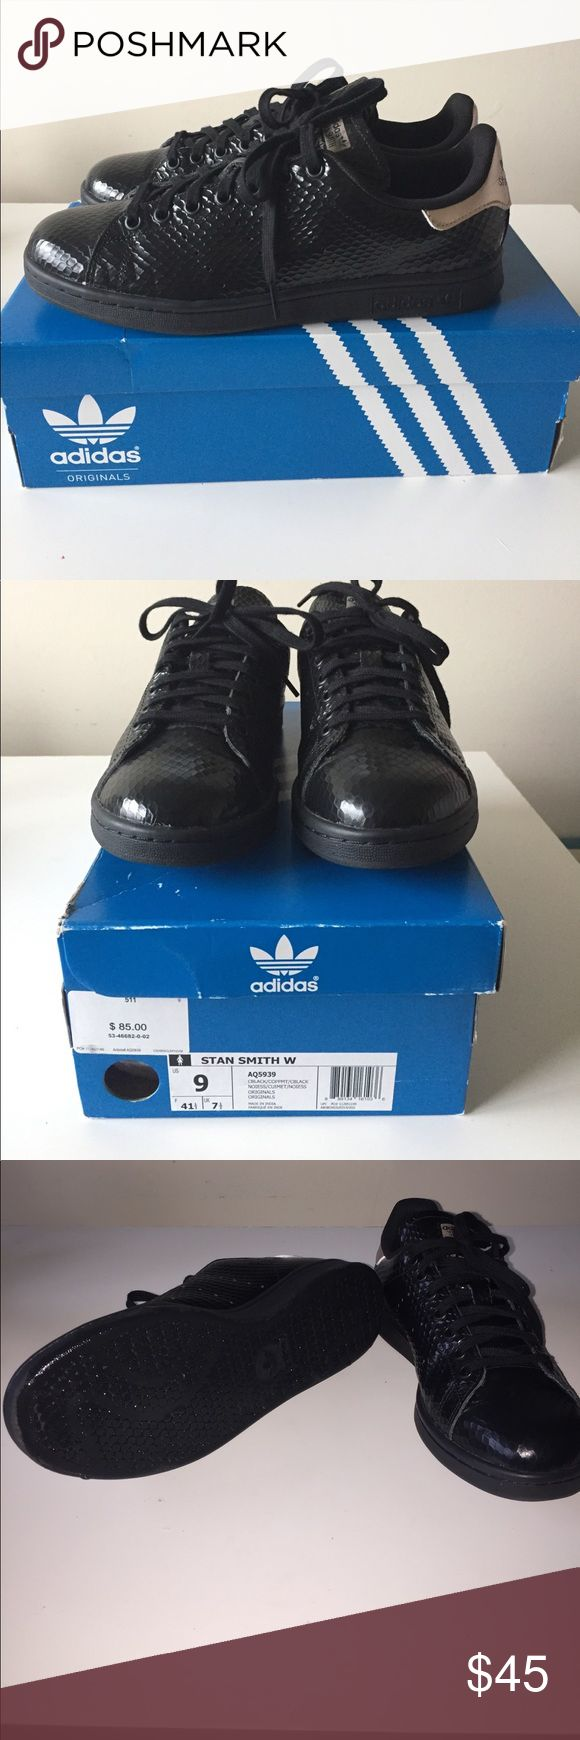 Adidas Stan Smith Sneakers Worn twice, great condition and perfect fit. Jeremy Scott x Adidas Shoes Athletic Shoes